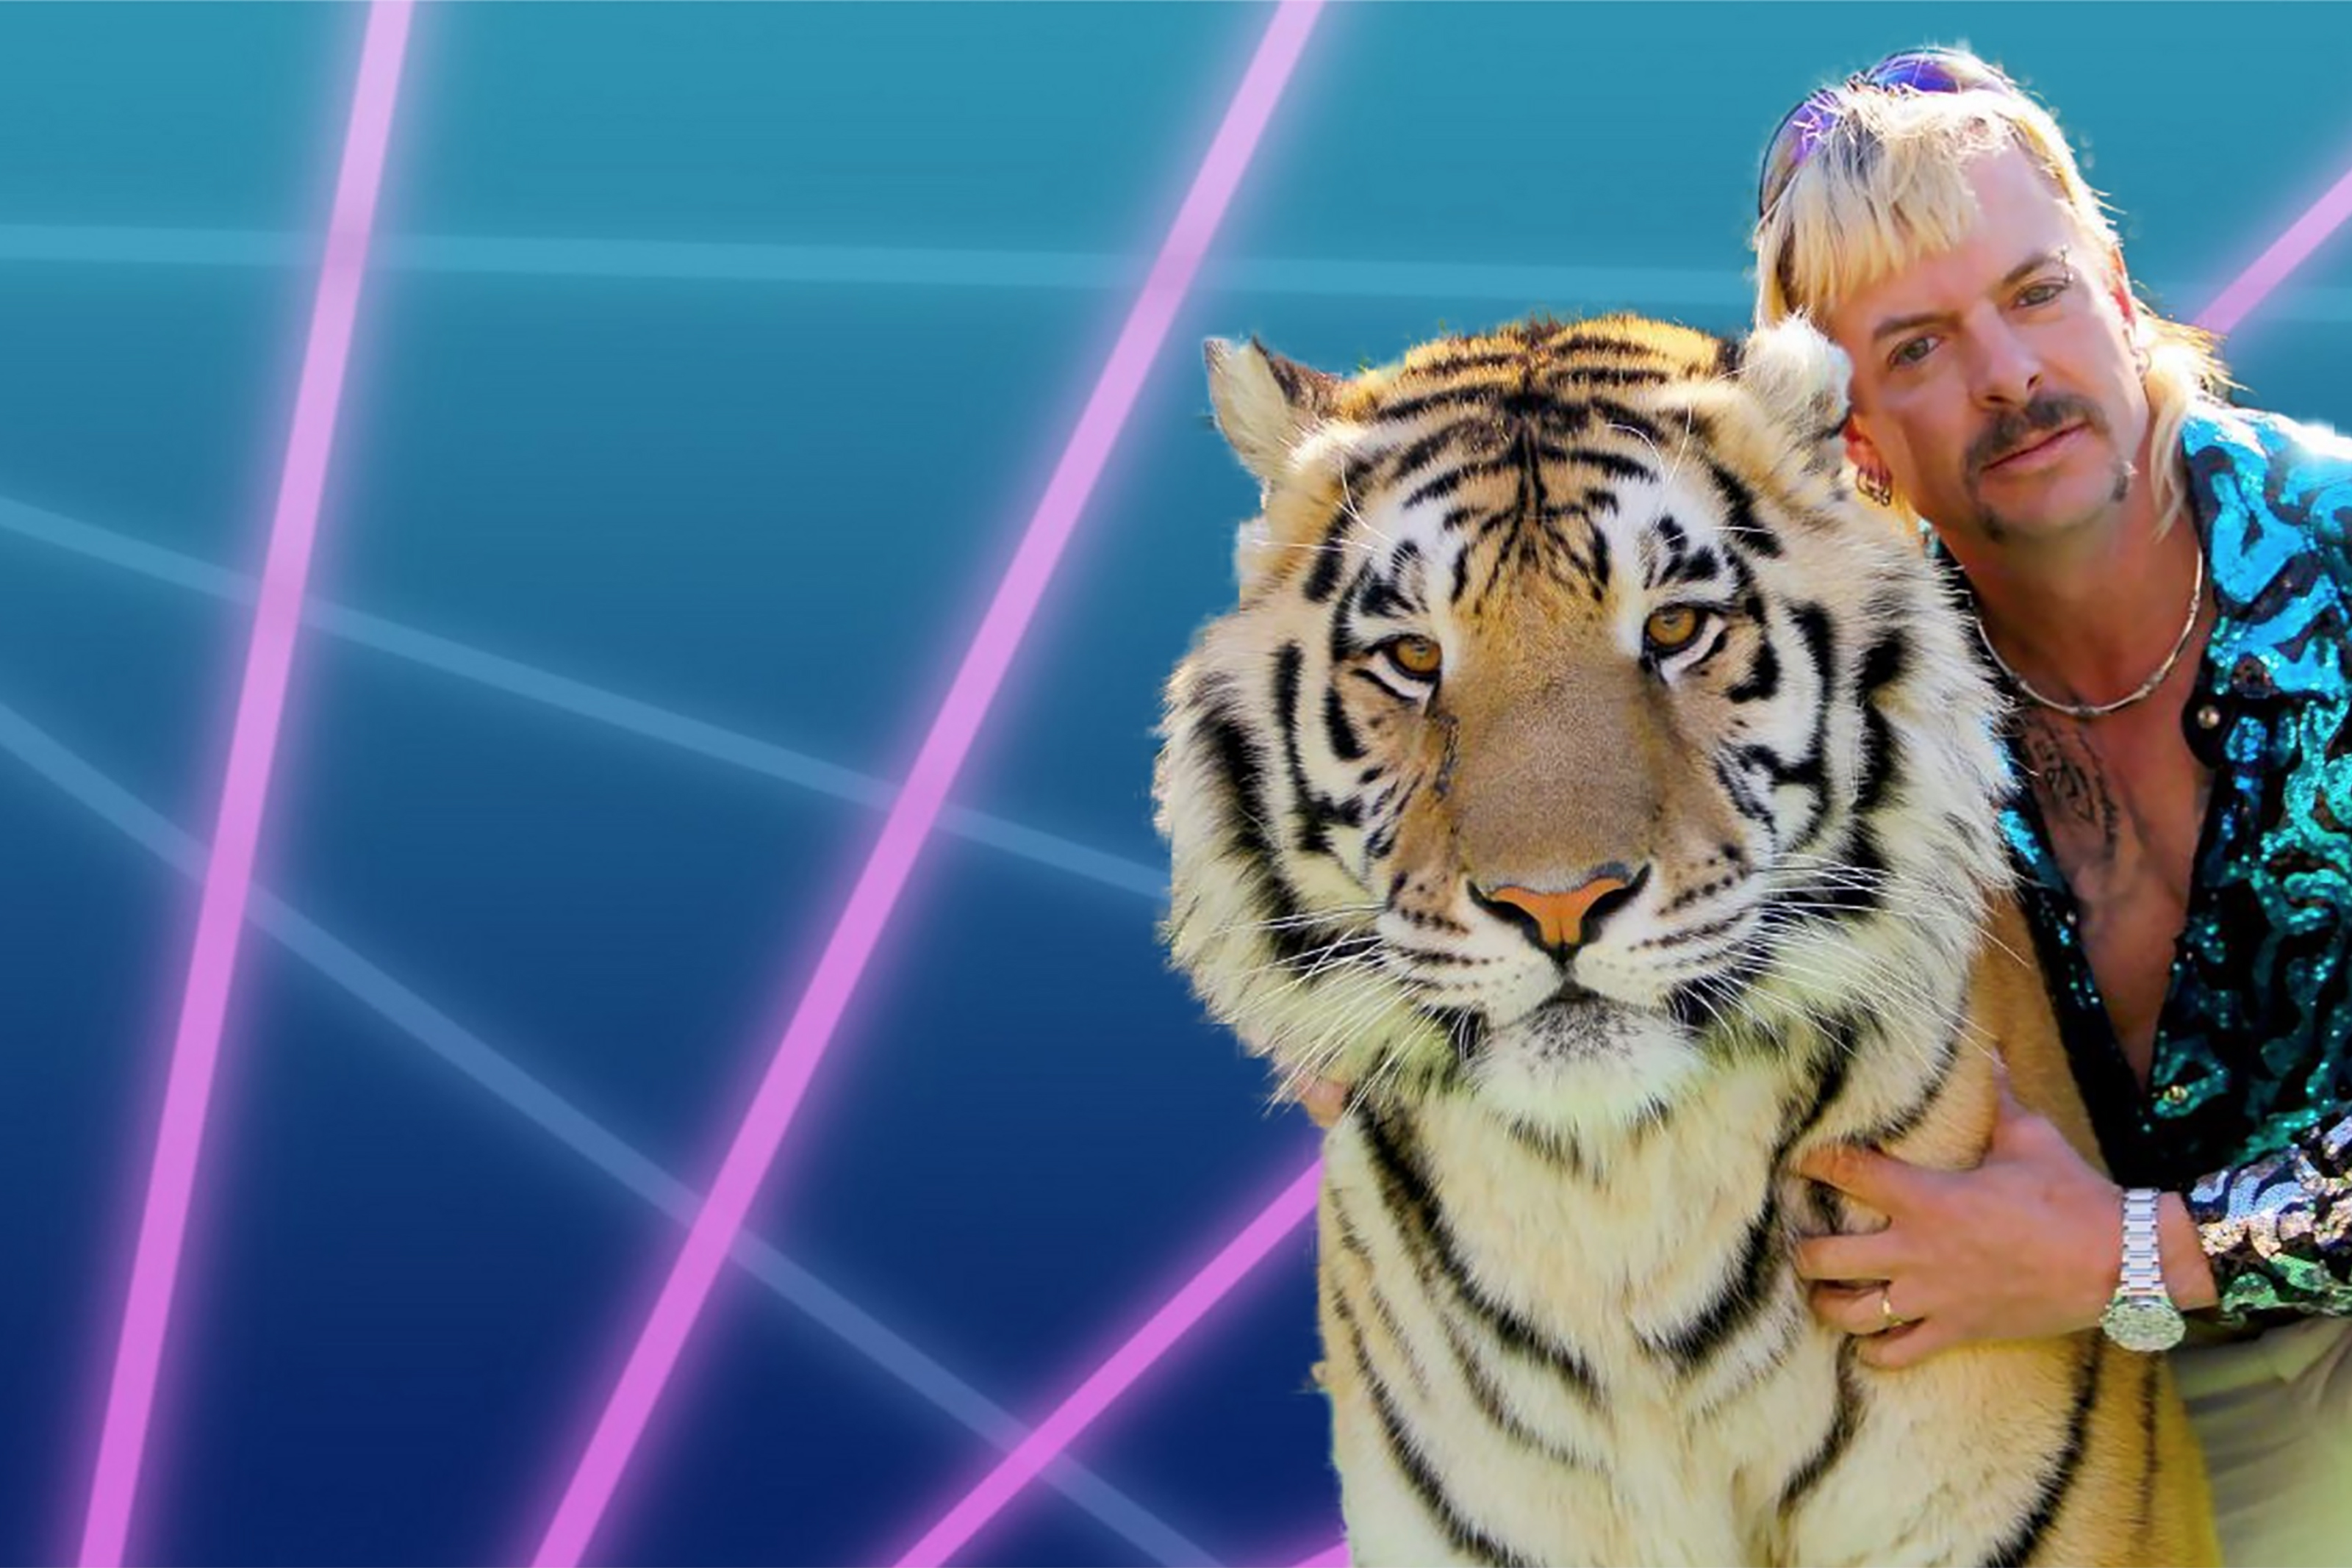 Weirdest Zoom Backgrounds. Tiger King Zoom Background